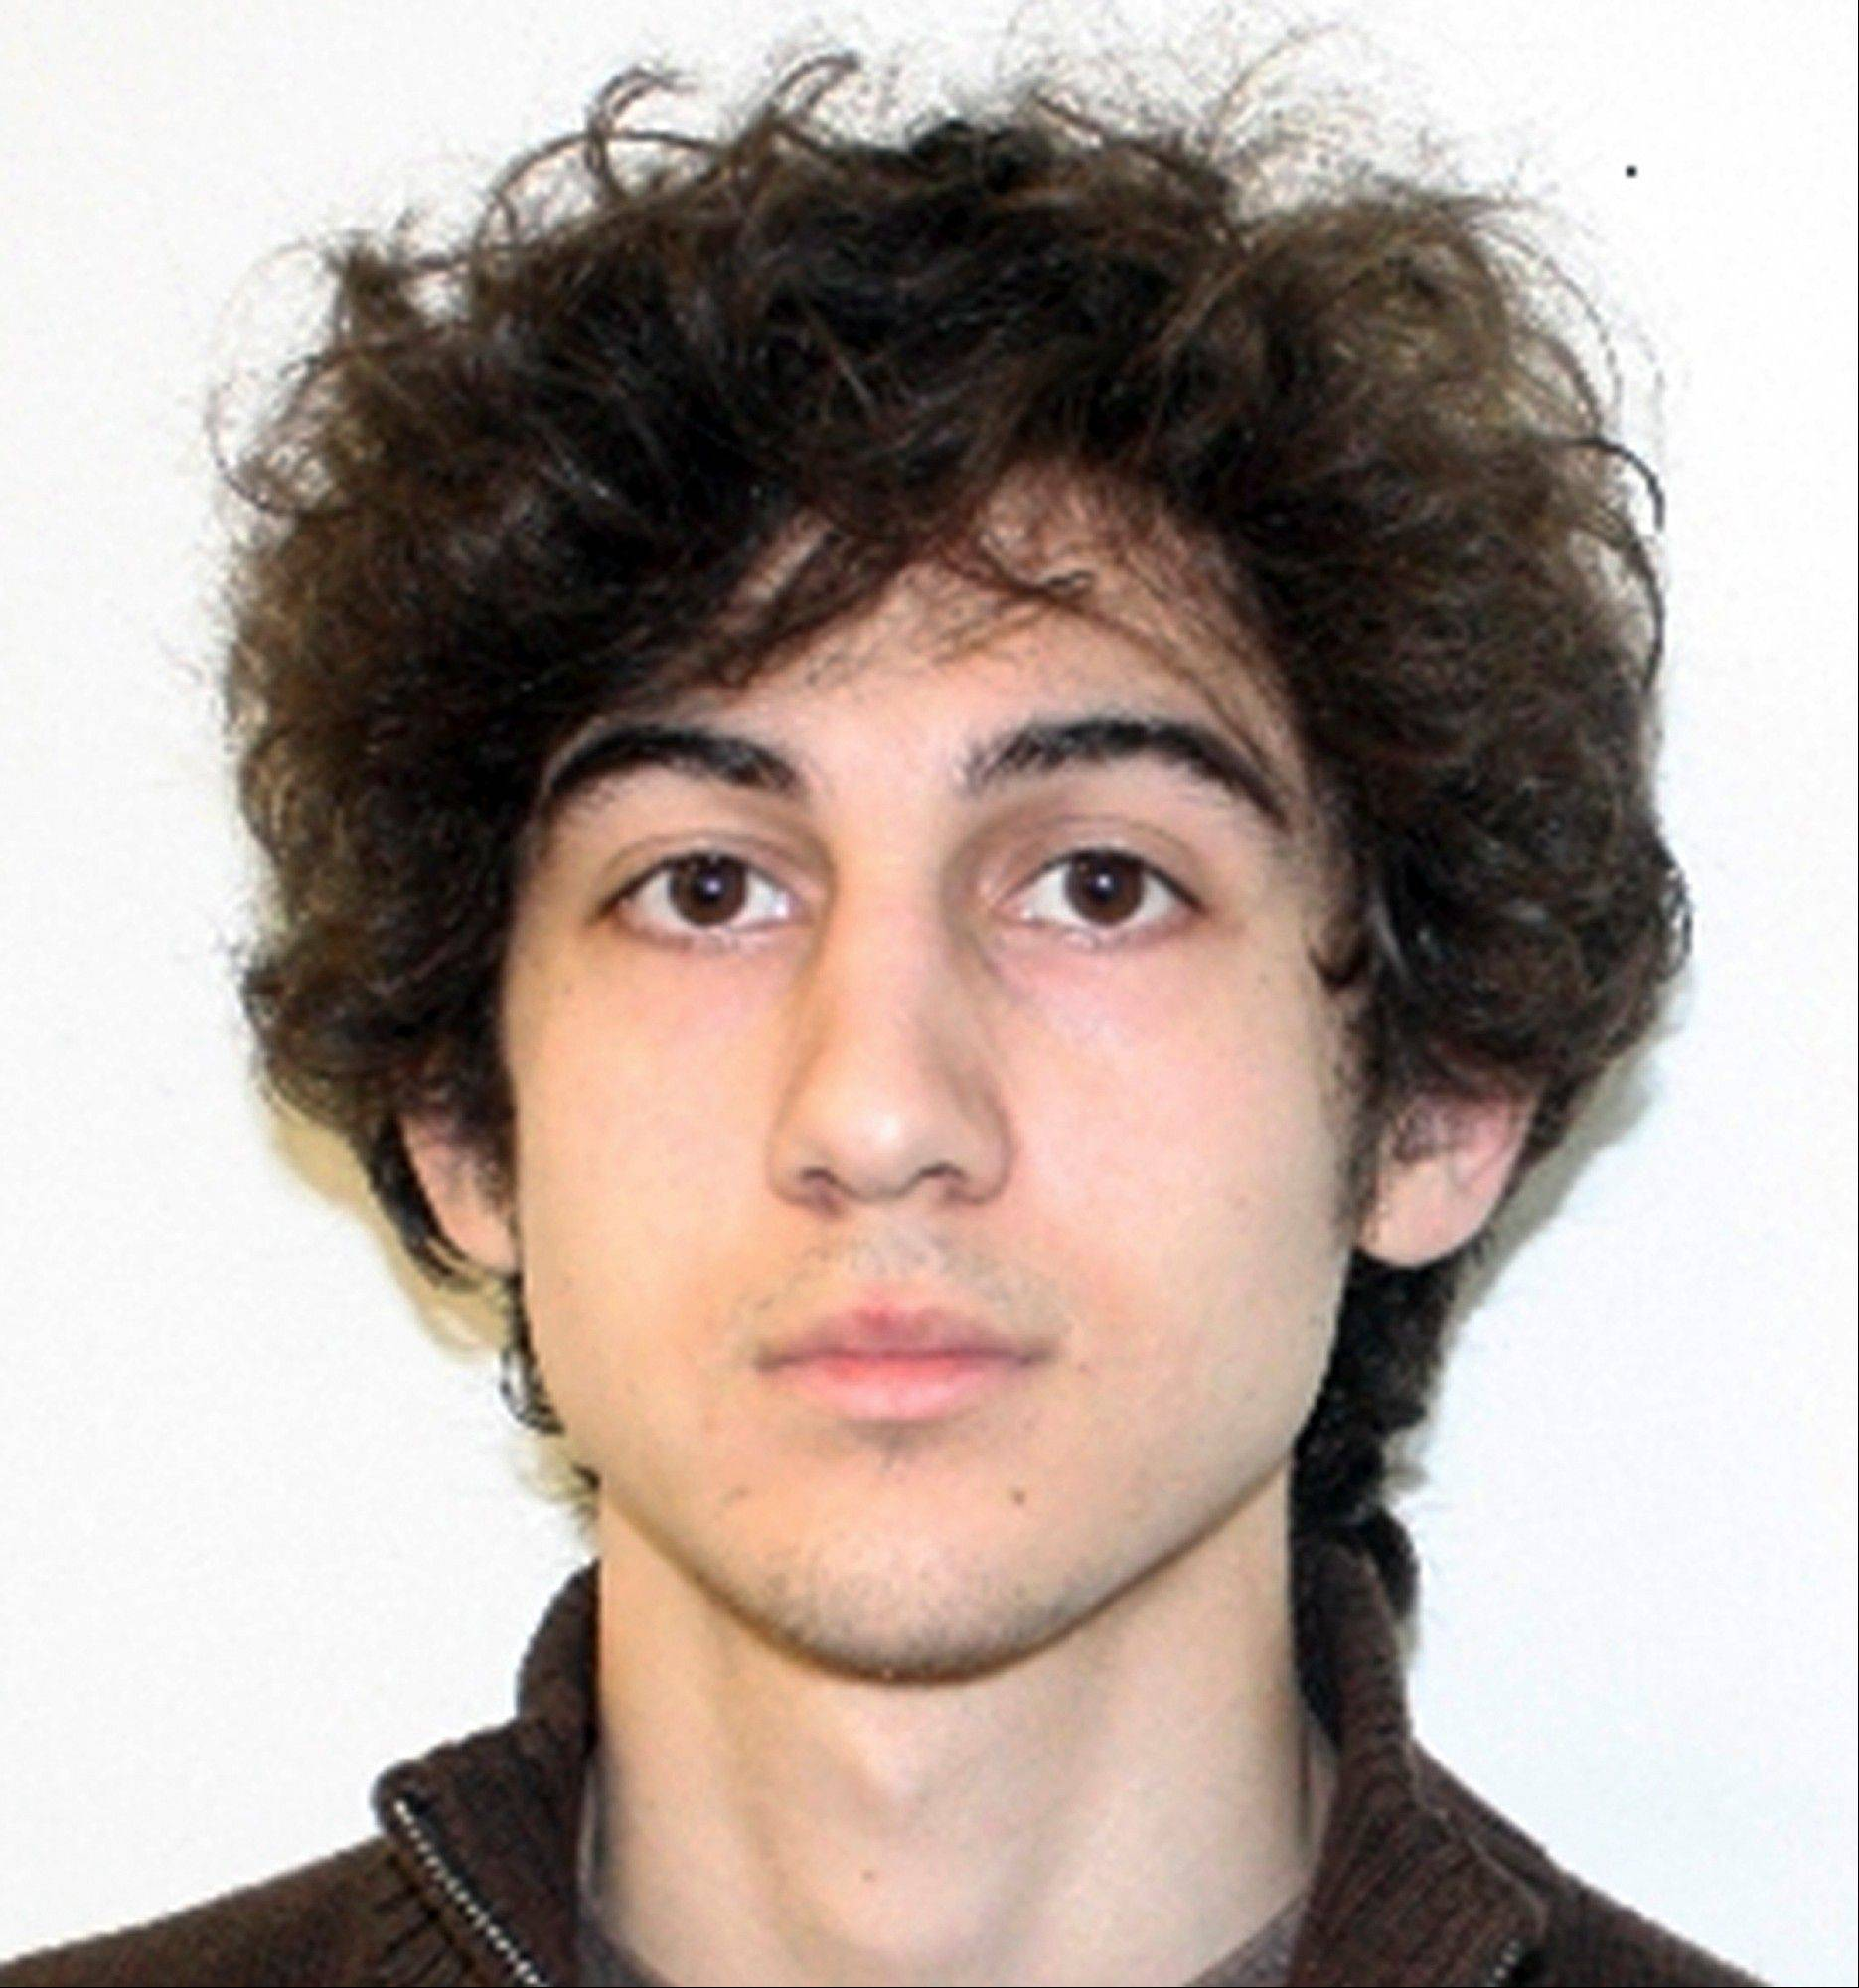 This photo released Friday, April 19, 2013 by the Federal Bureau of Investigation shows a suspect that officials identified as Dzhokhar Tsarnaev, being sought by police in the Boston Marathon bombings Monday.